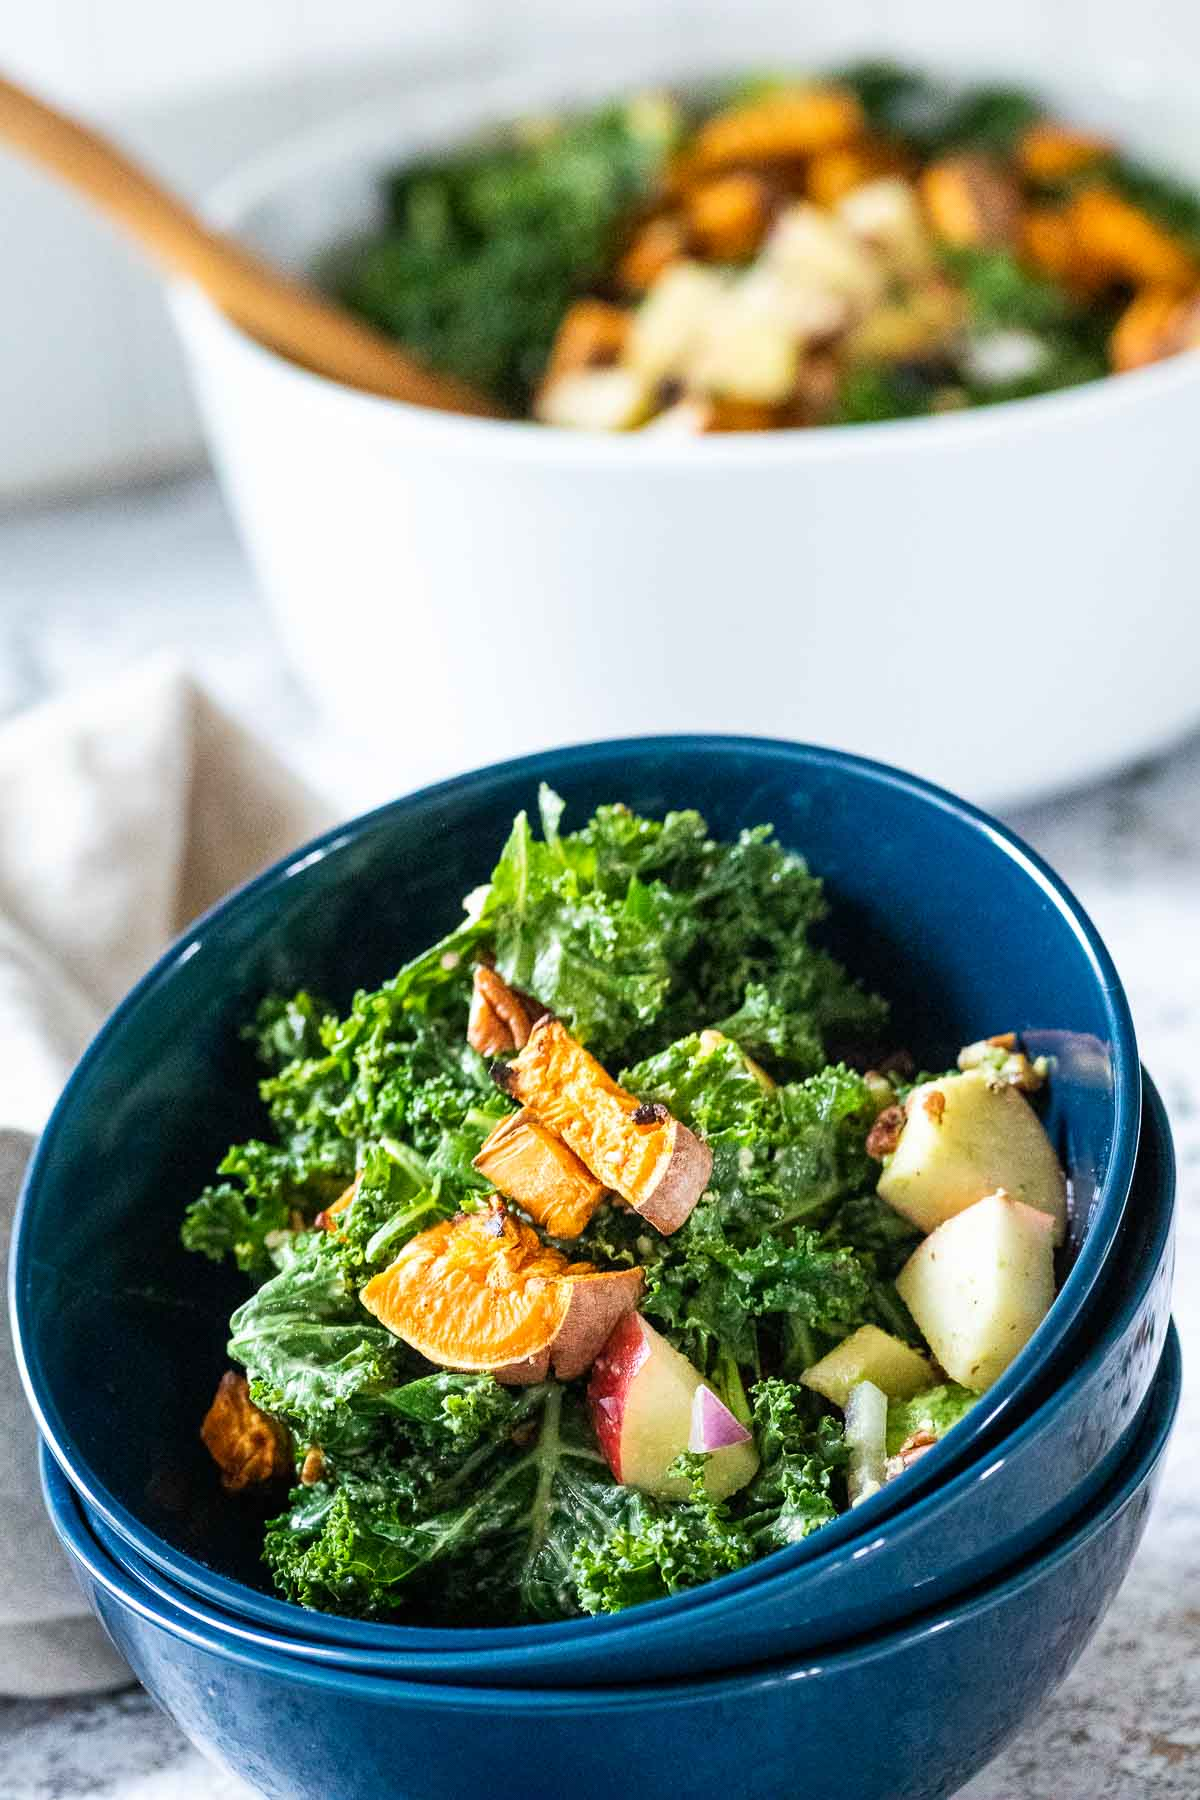 Staple of 3 blue bowls with kale salad on top with blurred big white bowl in the back